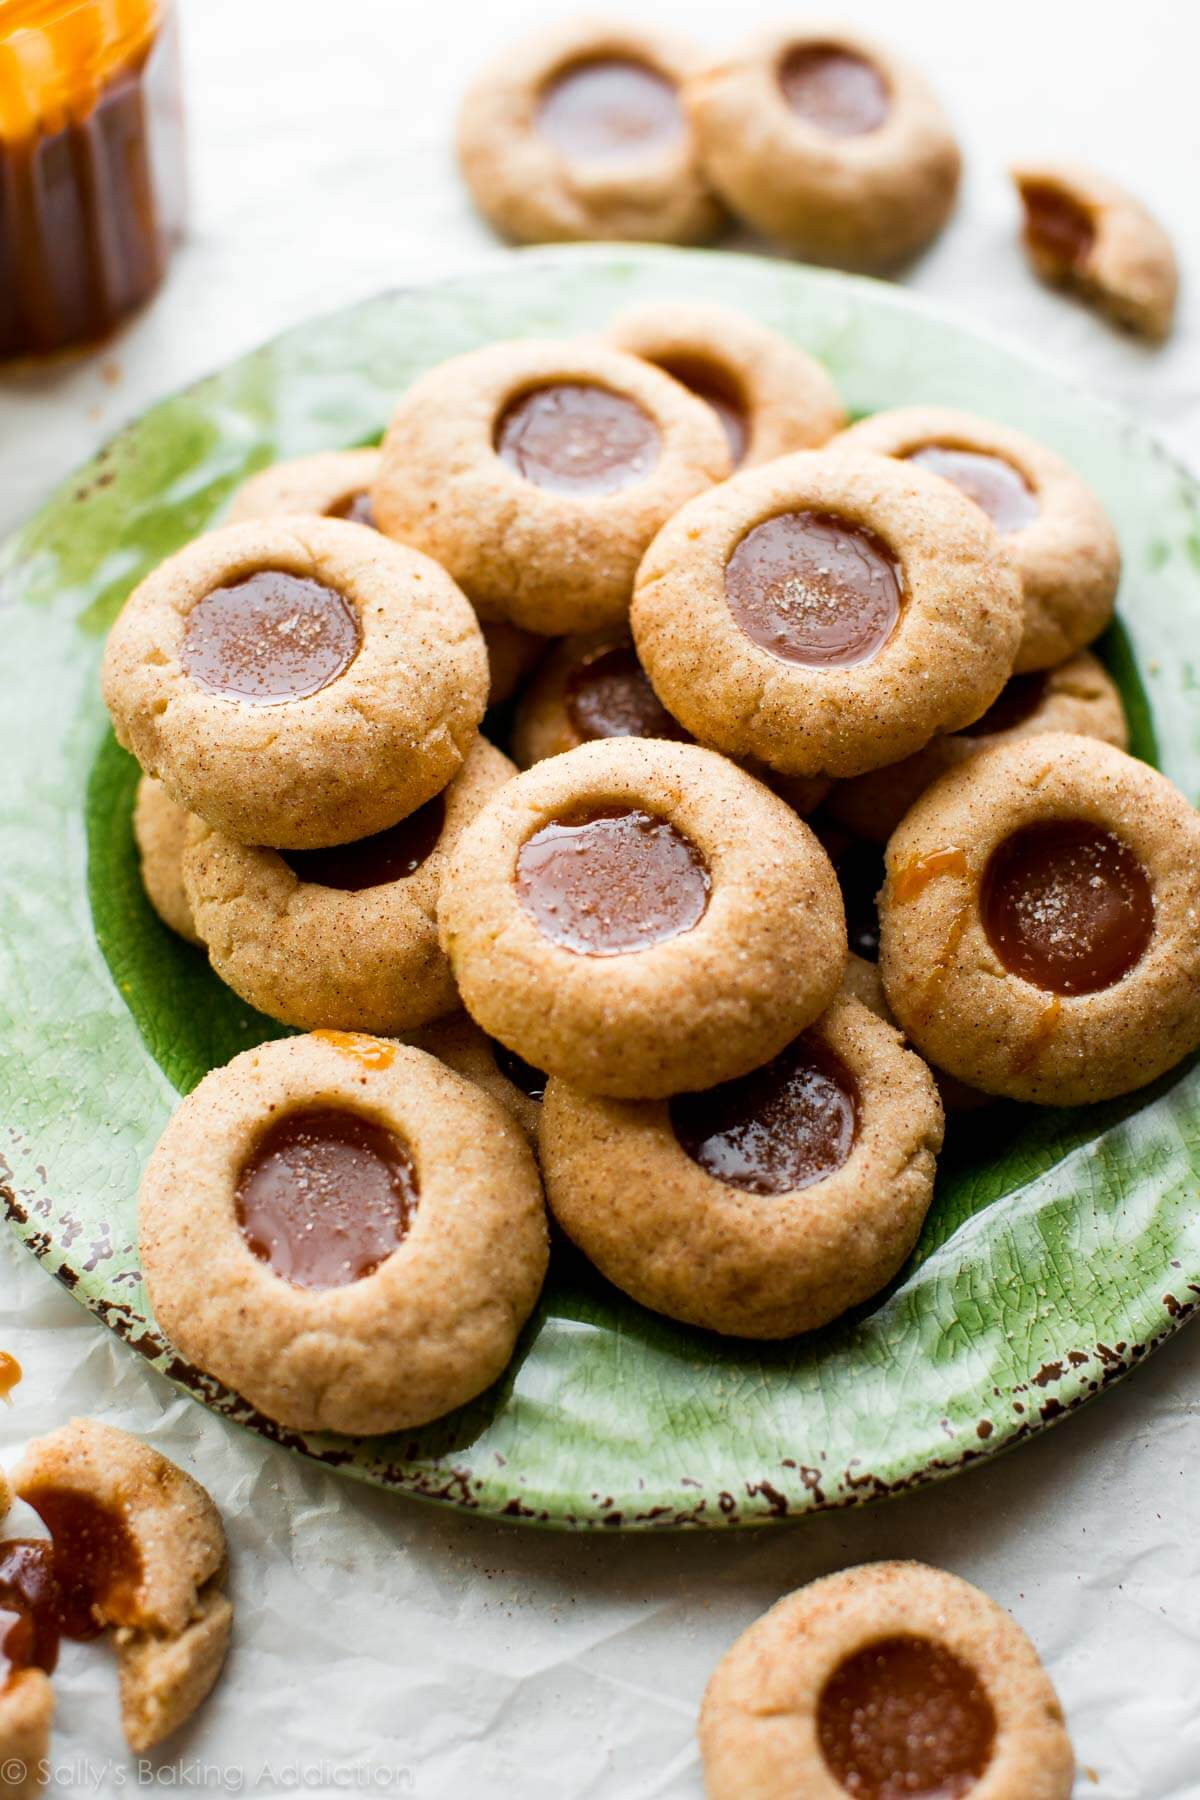 Apple spice thumbprint cookies filled with homemade caramel! These delicious fall cookies are completely irresistible and so simple to make! Recipe on sallysbakingaddiction.com